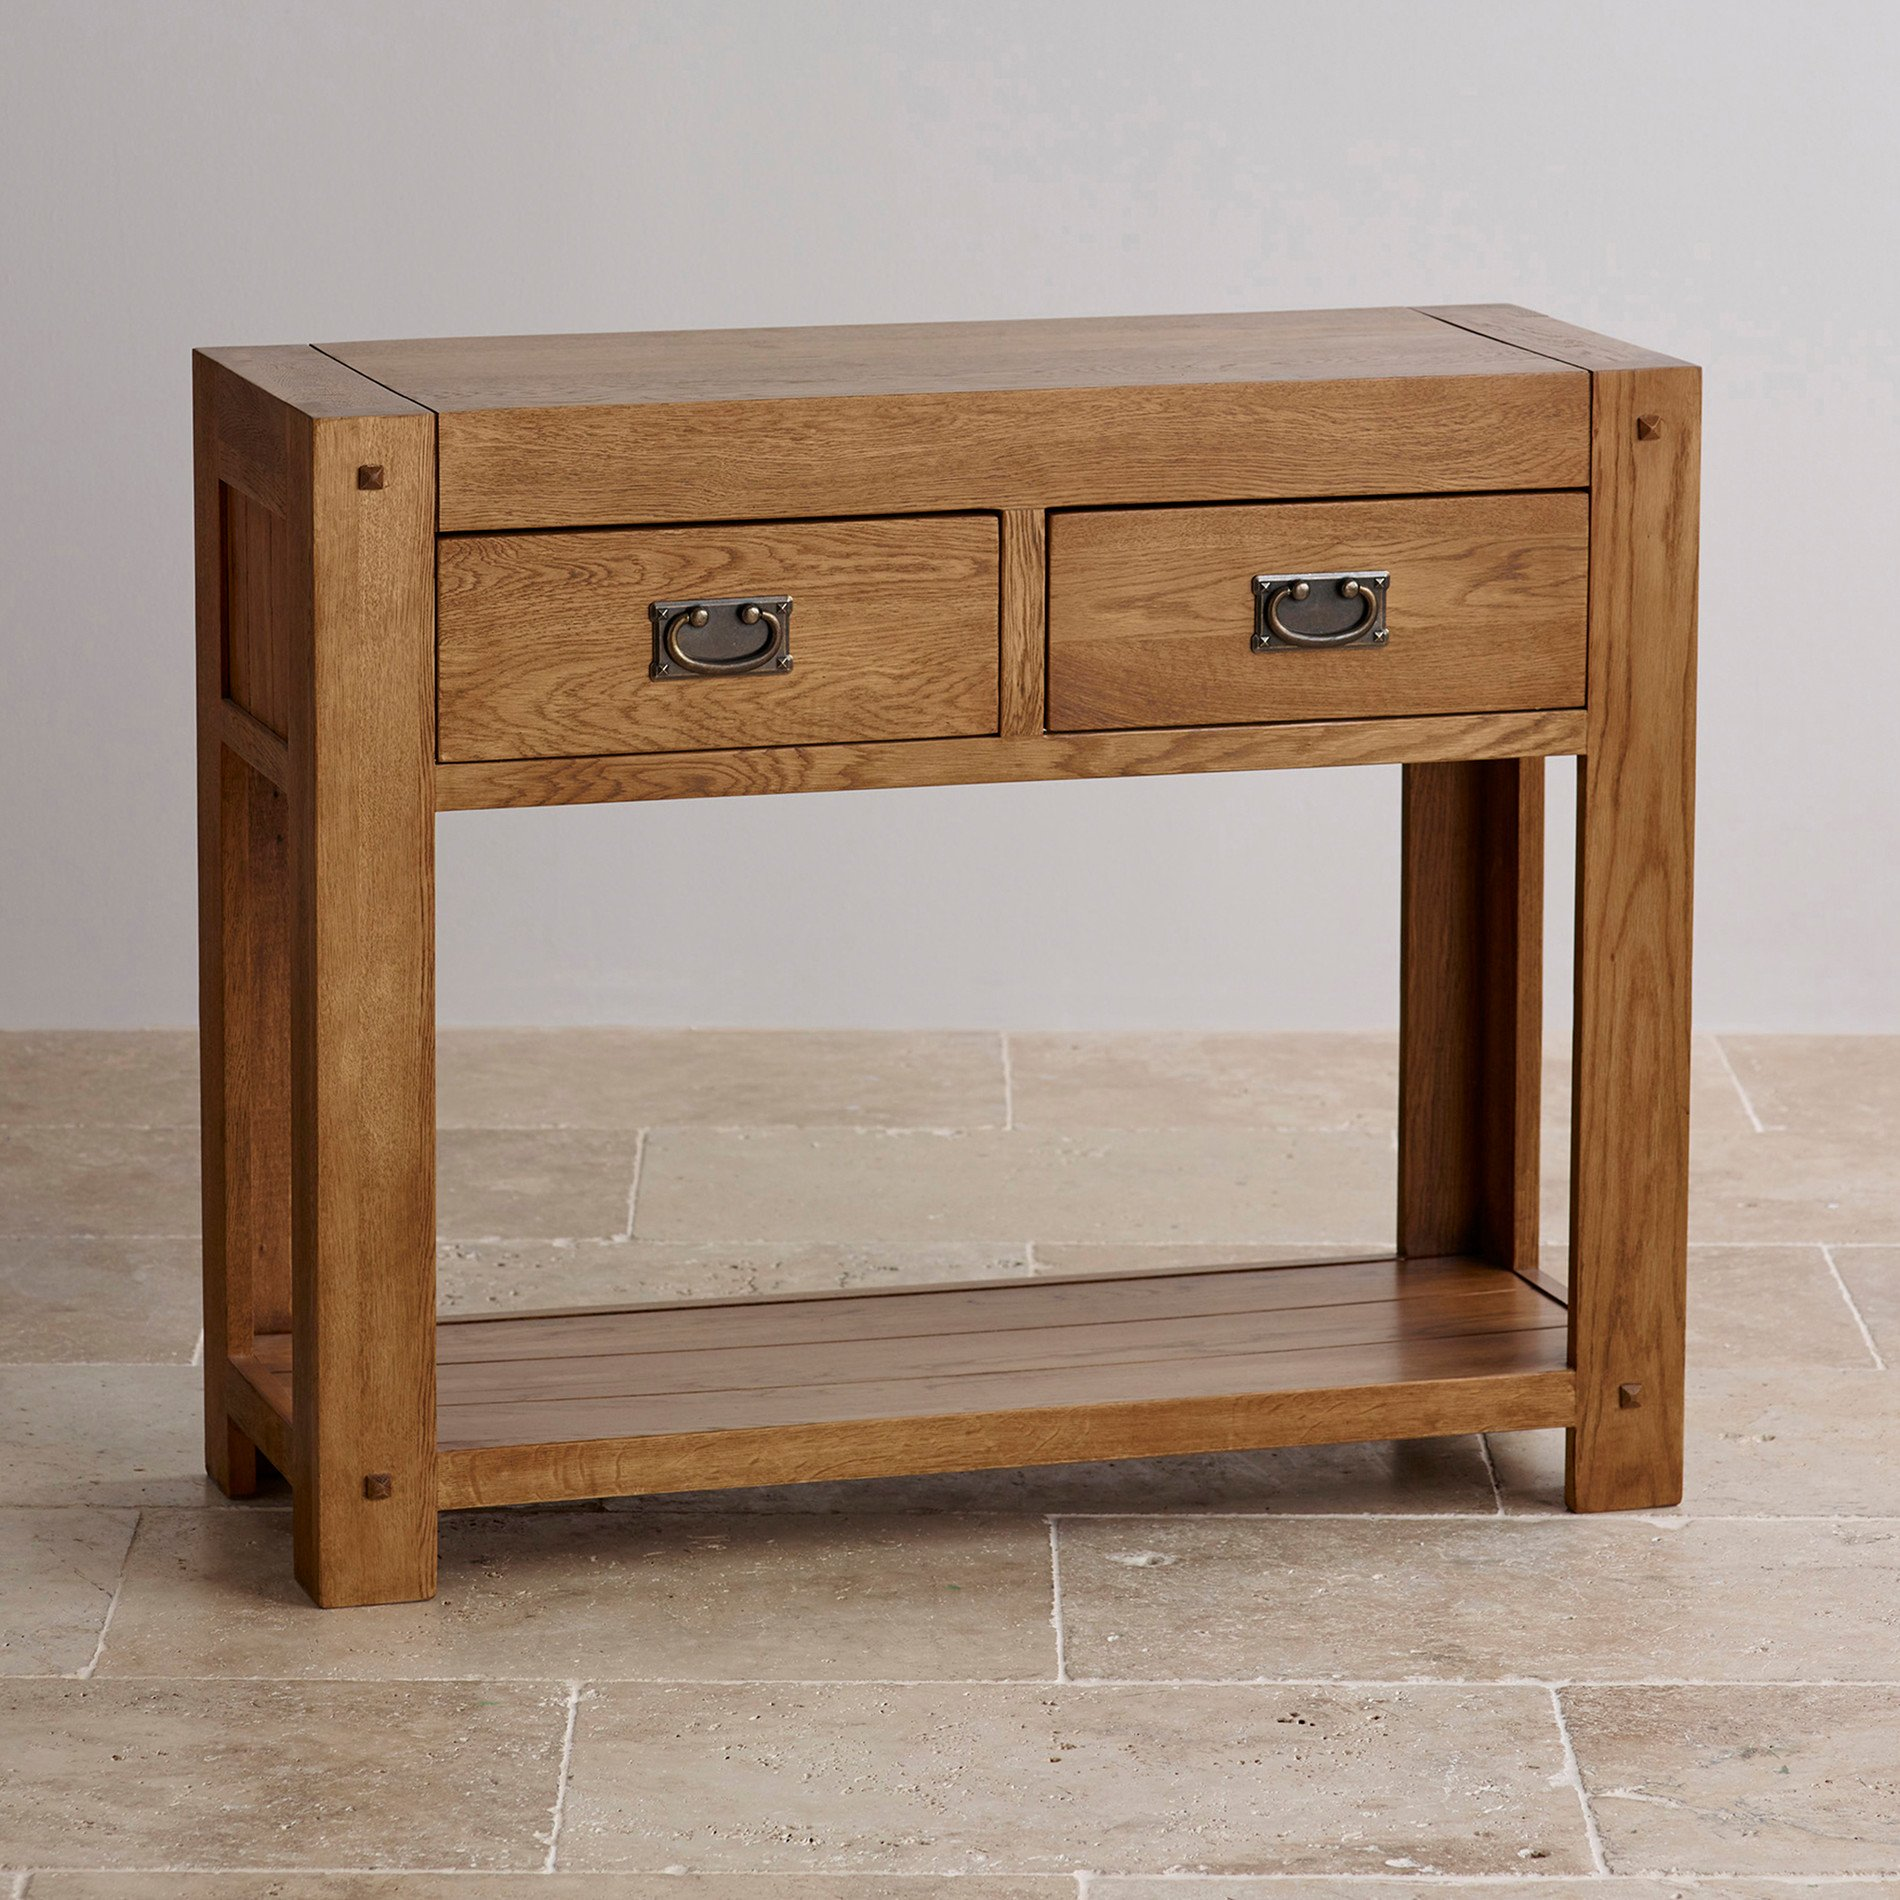 Quercus console table in rustic solid oak furniture land